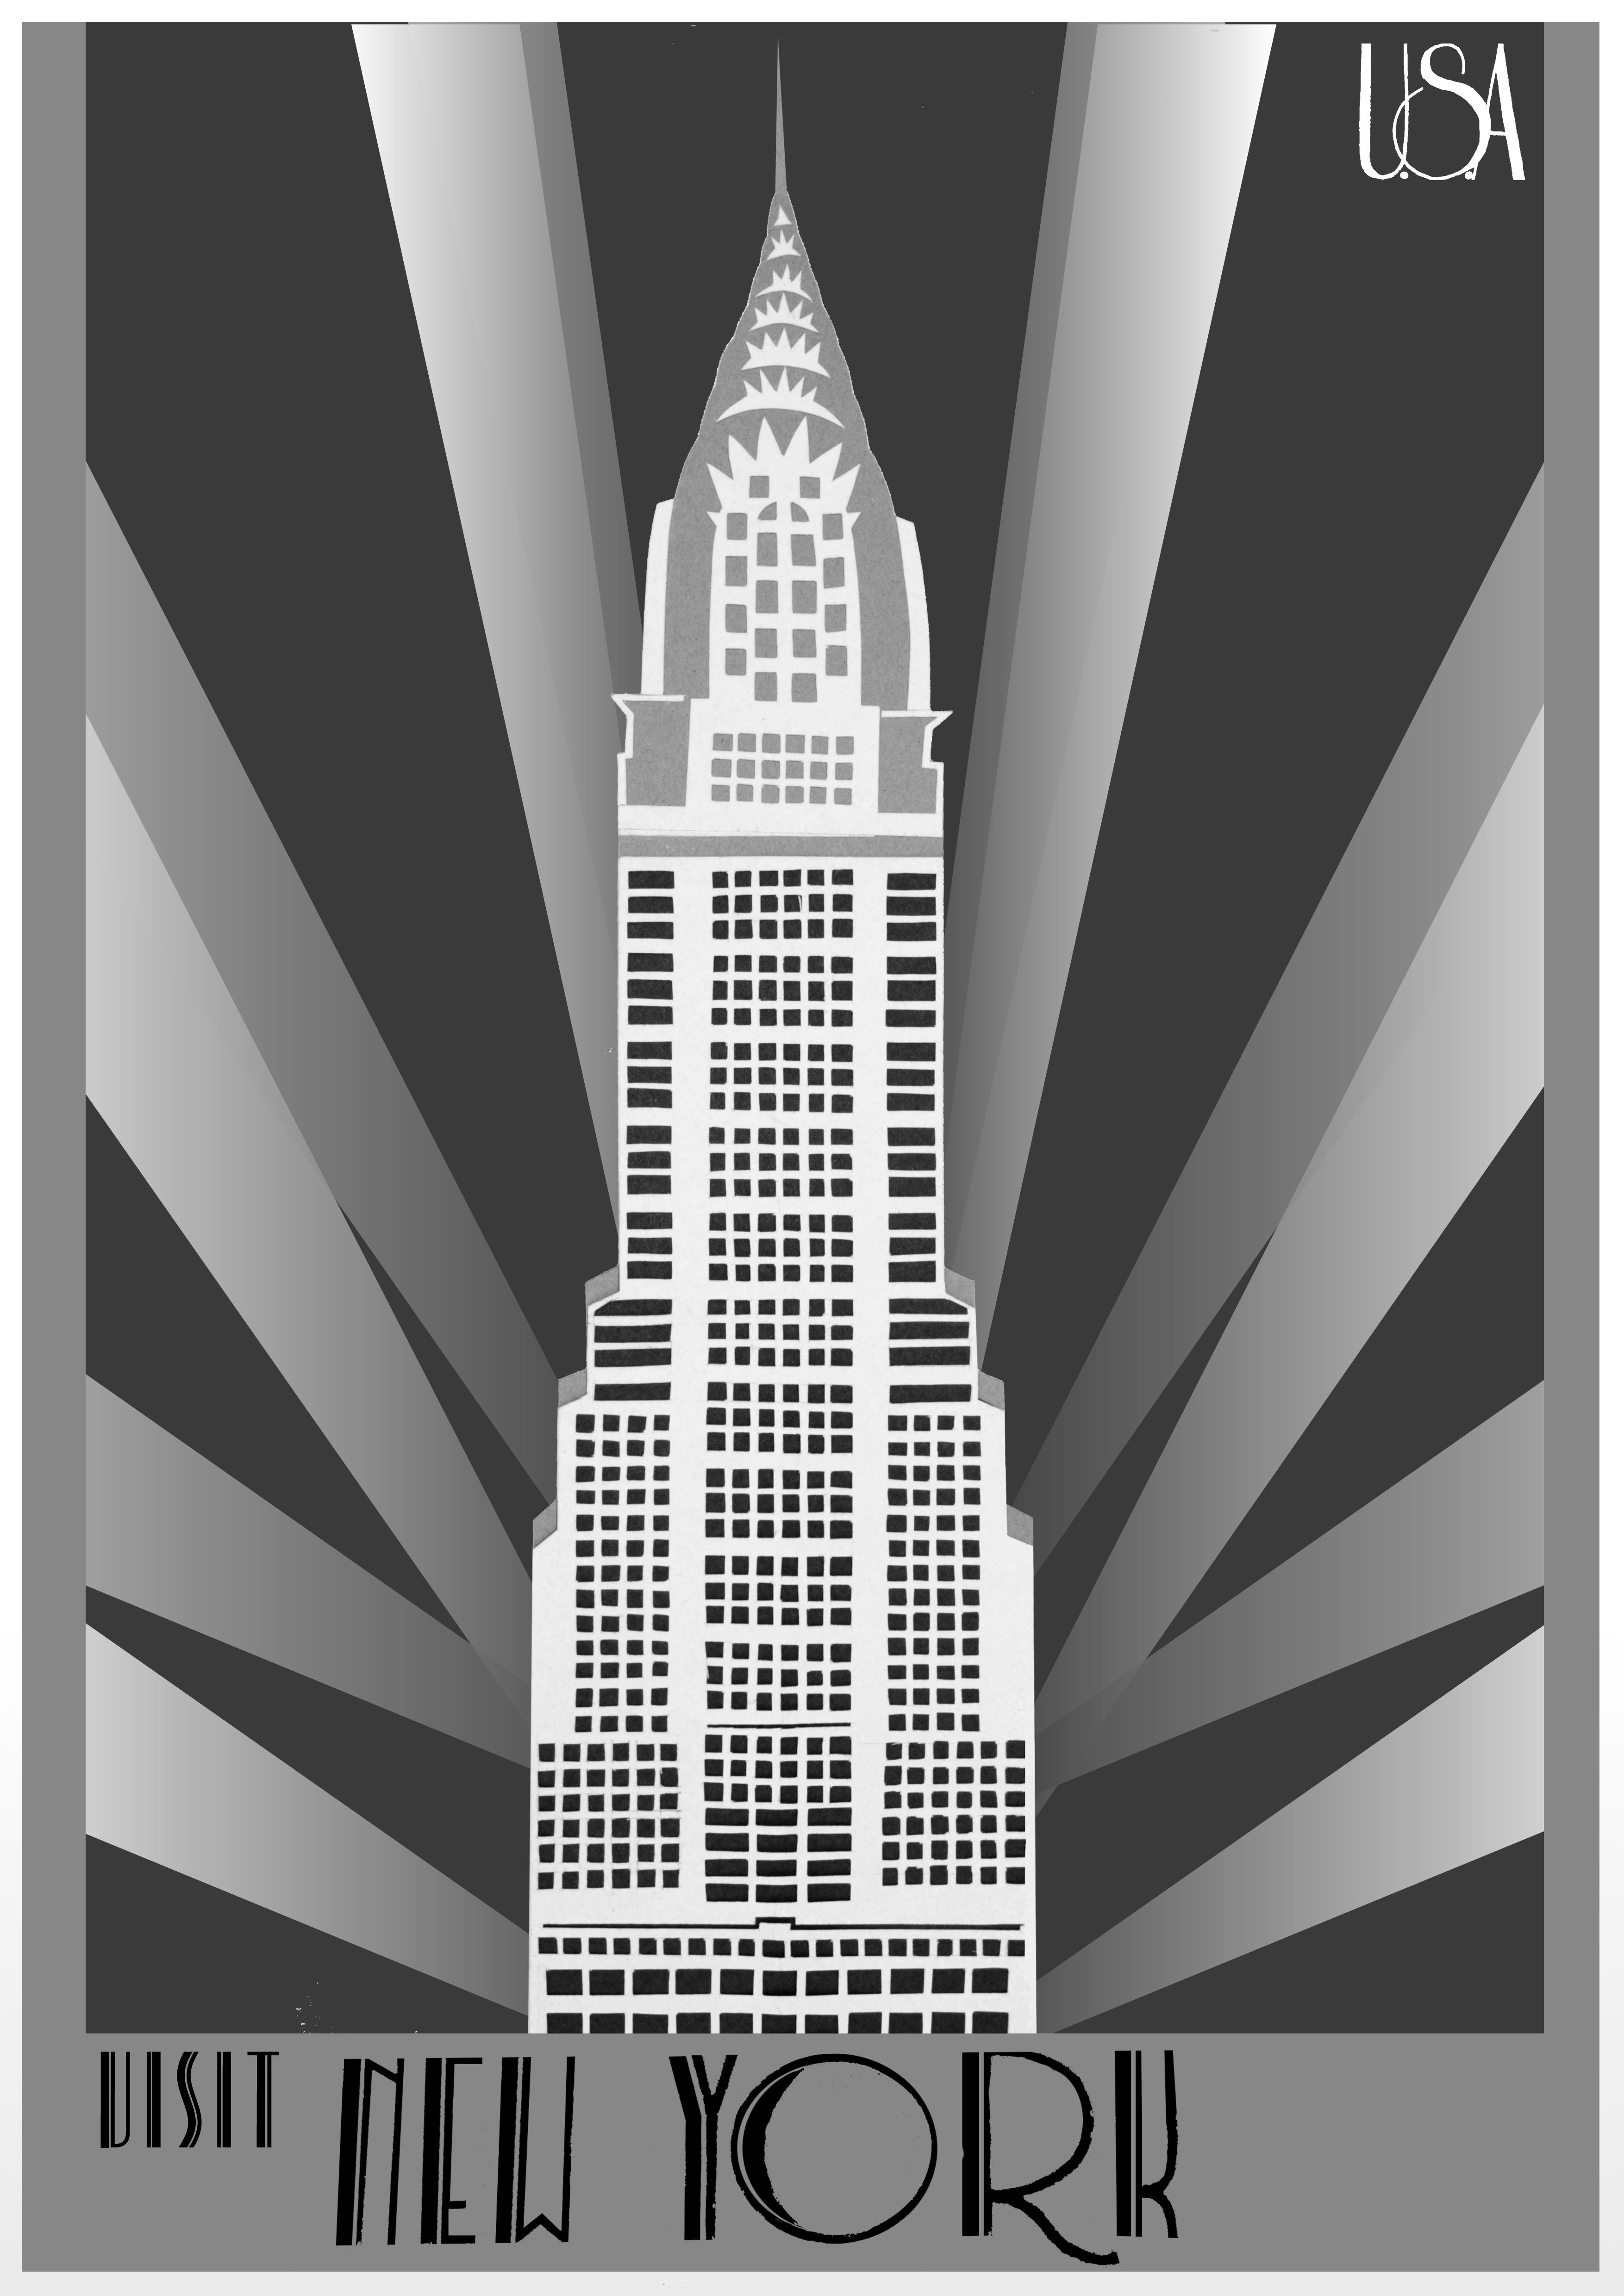 New York Art Deco Travel Poster With Images Art Deco Buildings